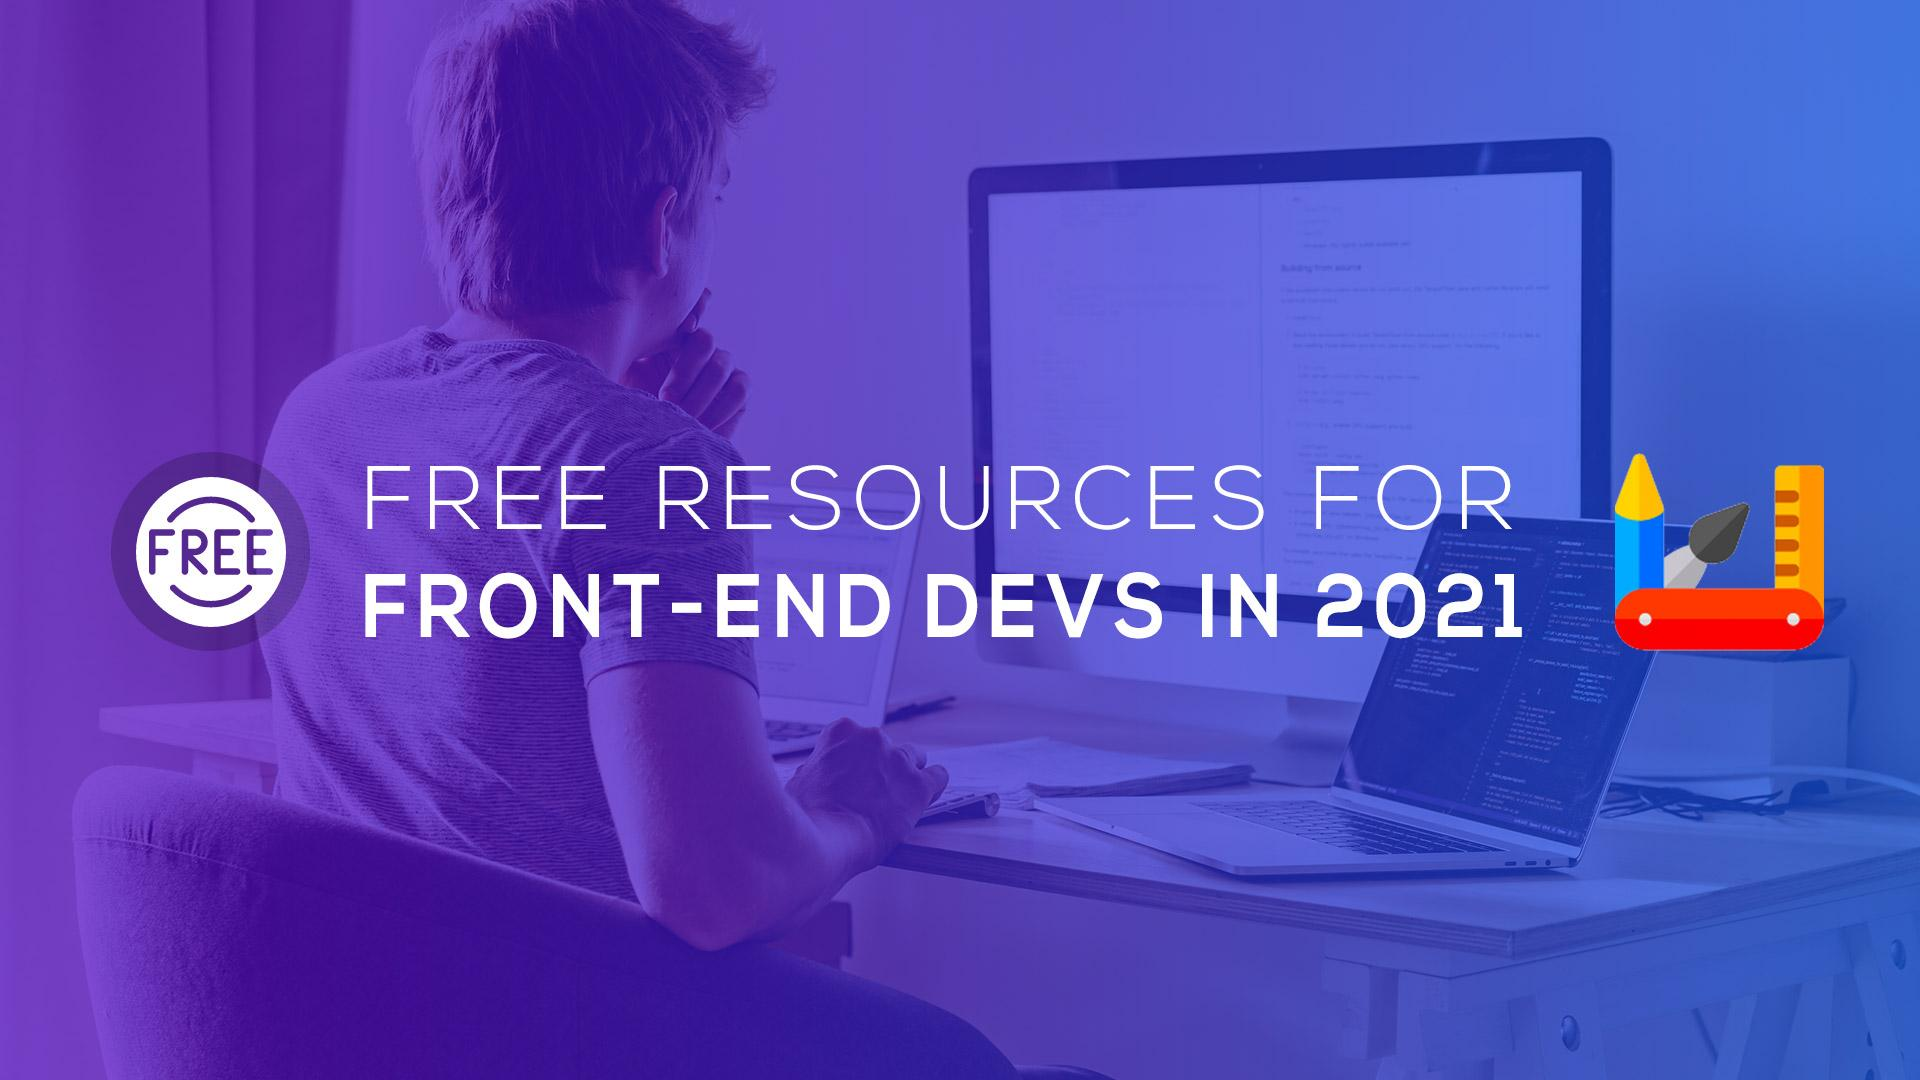 FREE Resources for Front-End Devs in 2021⚡